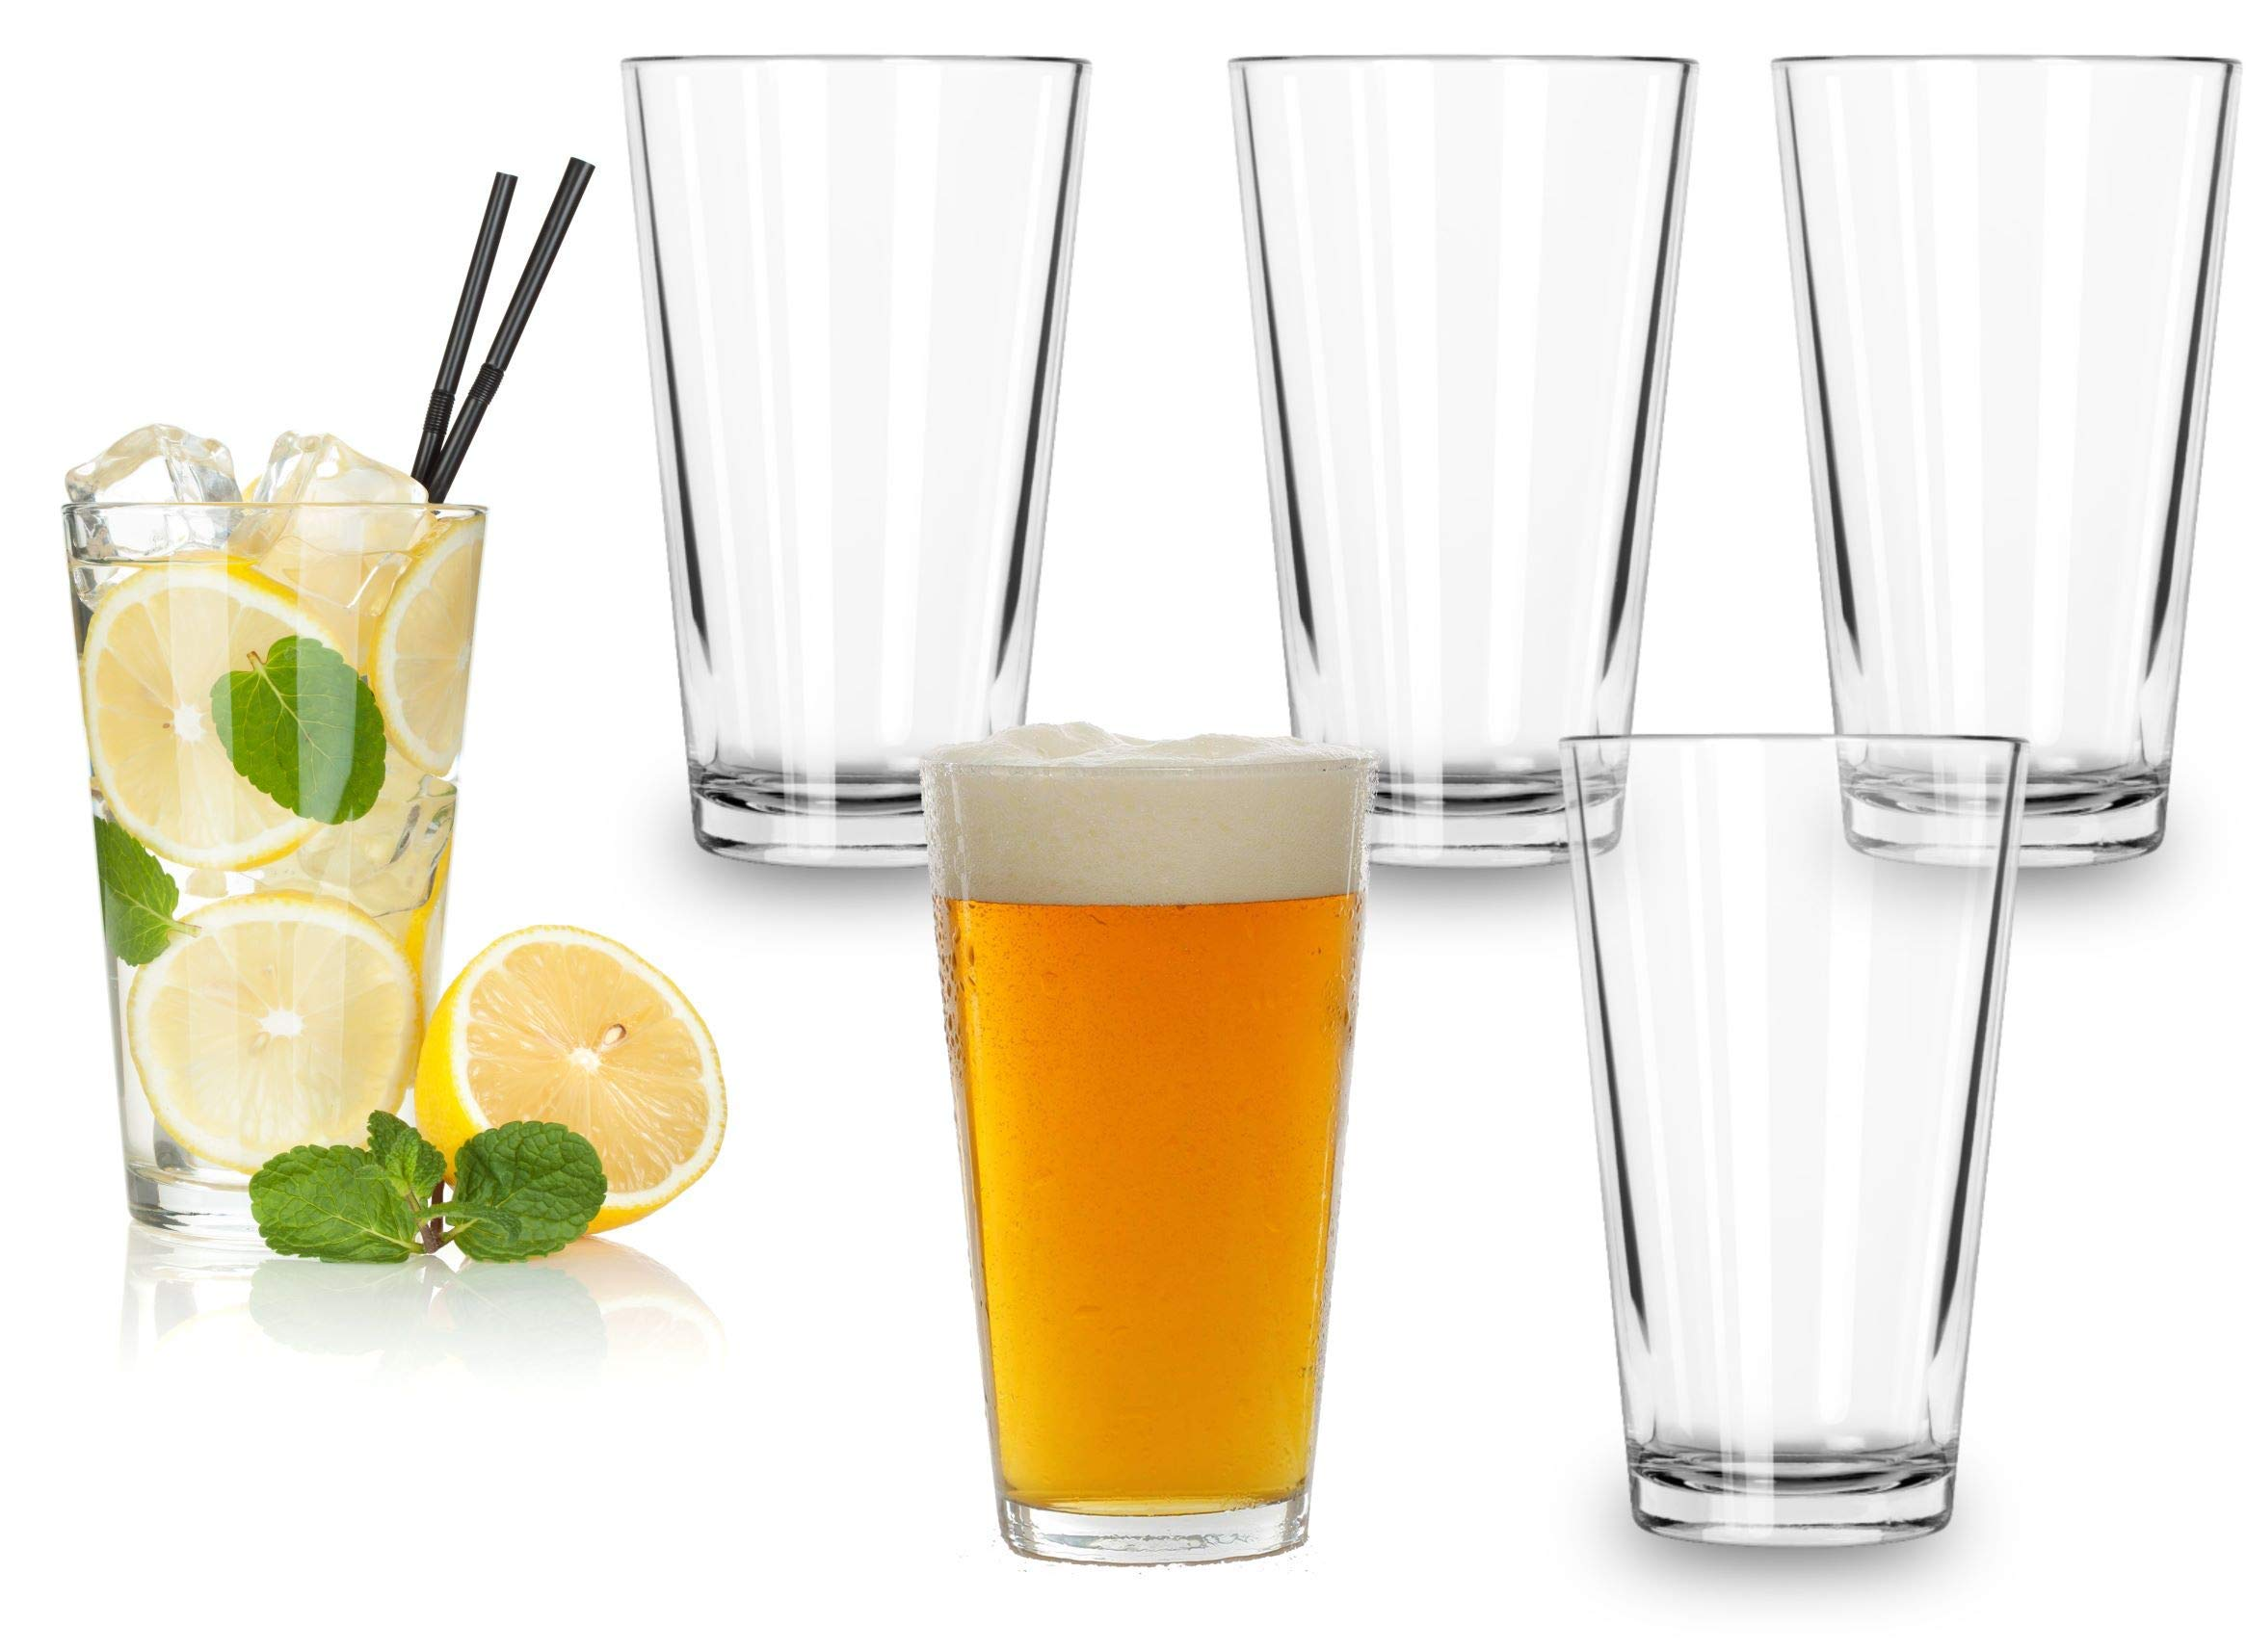 Classic Premium Beer Glasses 16 Ounce – Set Of 6 Pint Cocktail Mixing Glass – Perfect for Cold Beverages, Soda, Water - Used in Bar, Restaurant, Pub